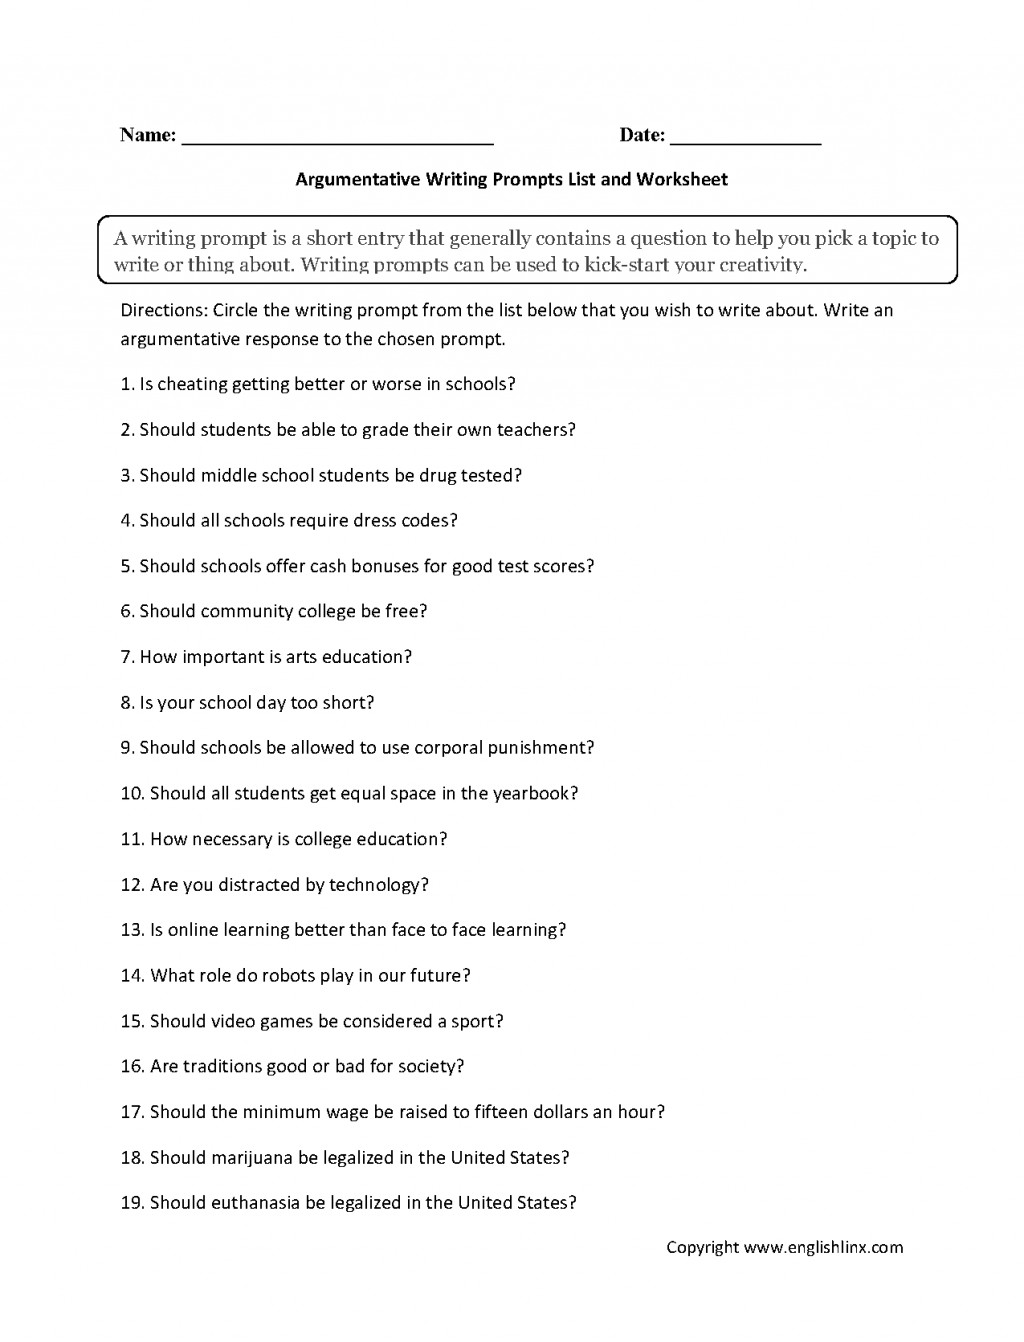 008 Argumentative Research Papers On Technology Paper Writing Prompts List Top Topics Large